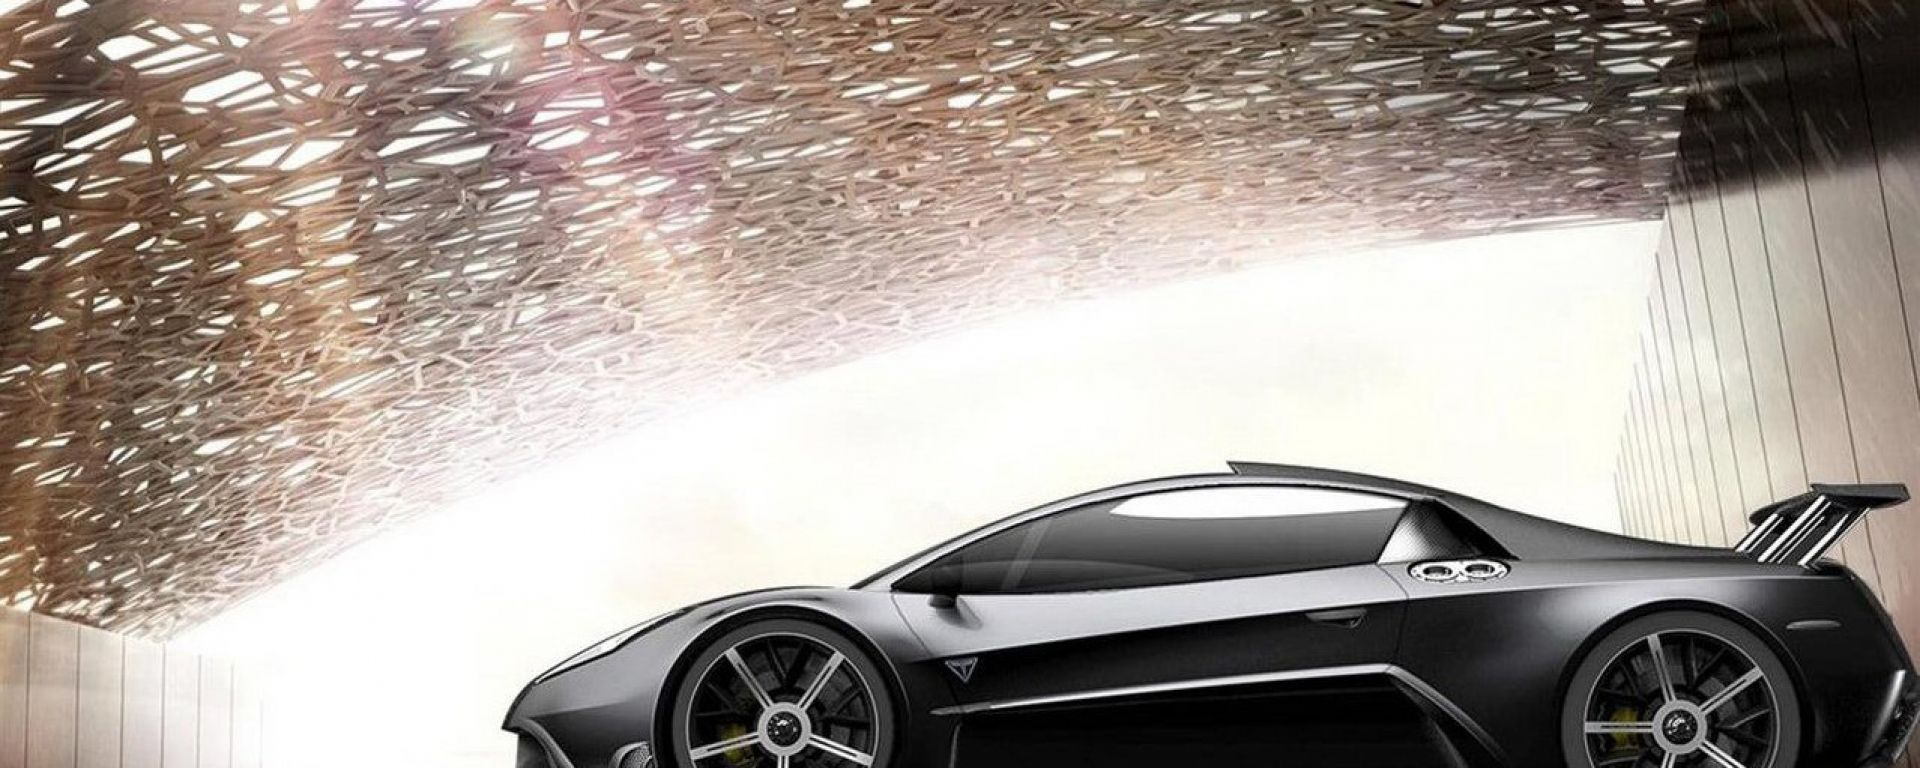 Forego T700 Supercar